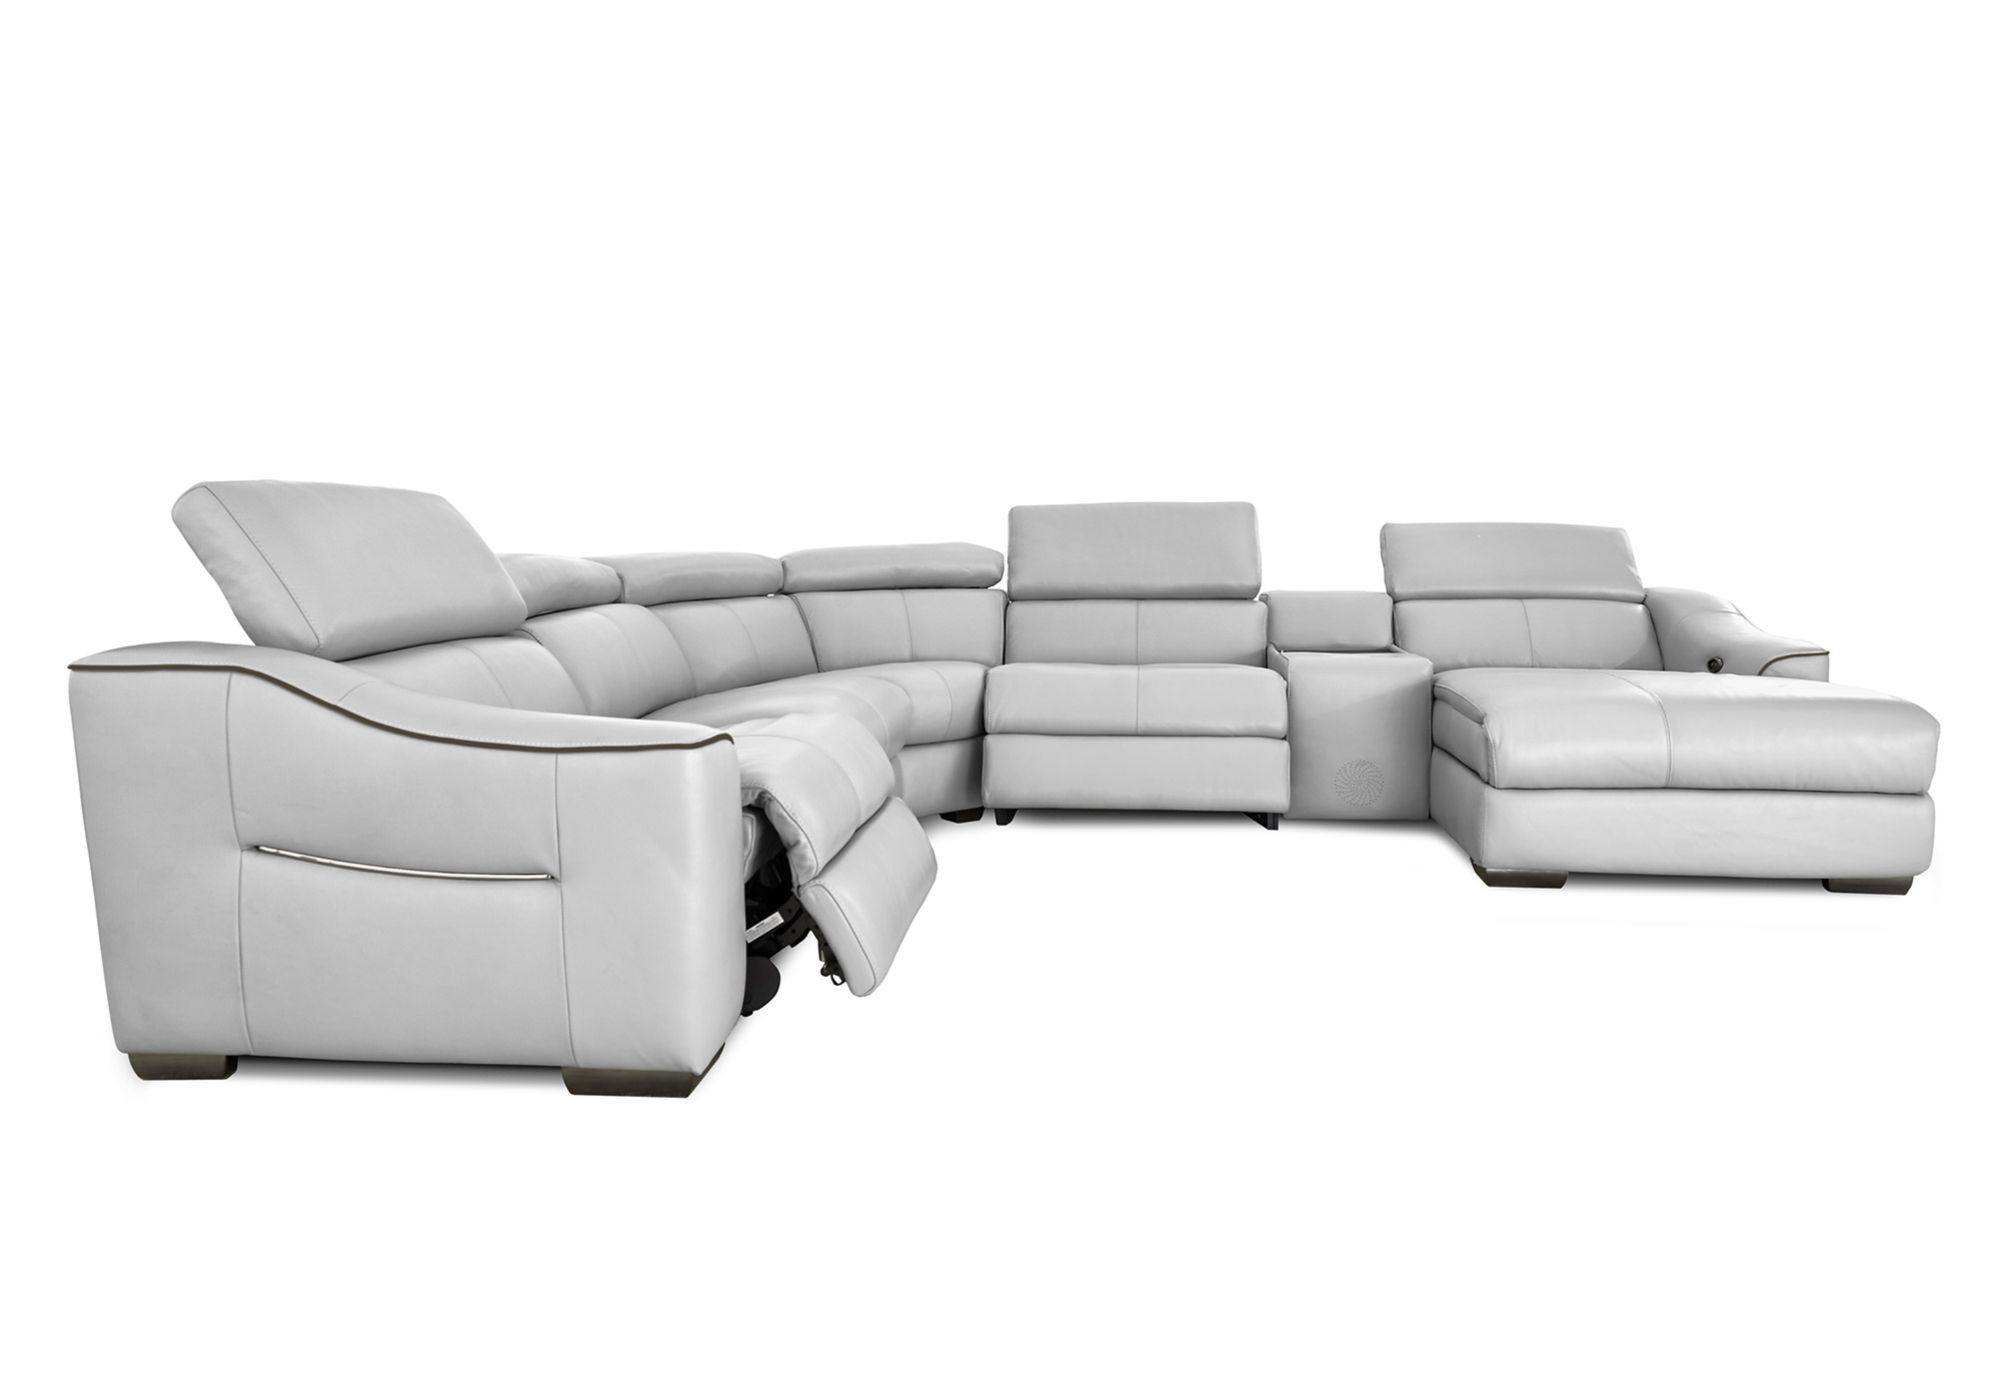 Furniture village sofas furniture village corner sofas for Chaise lounge corner sofa